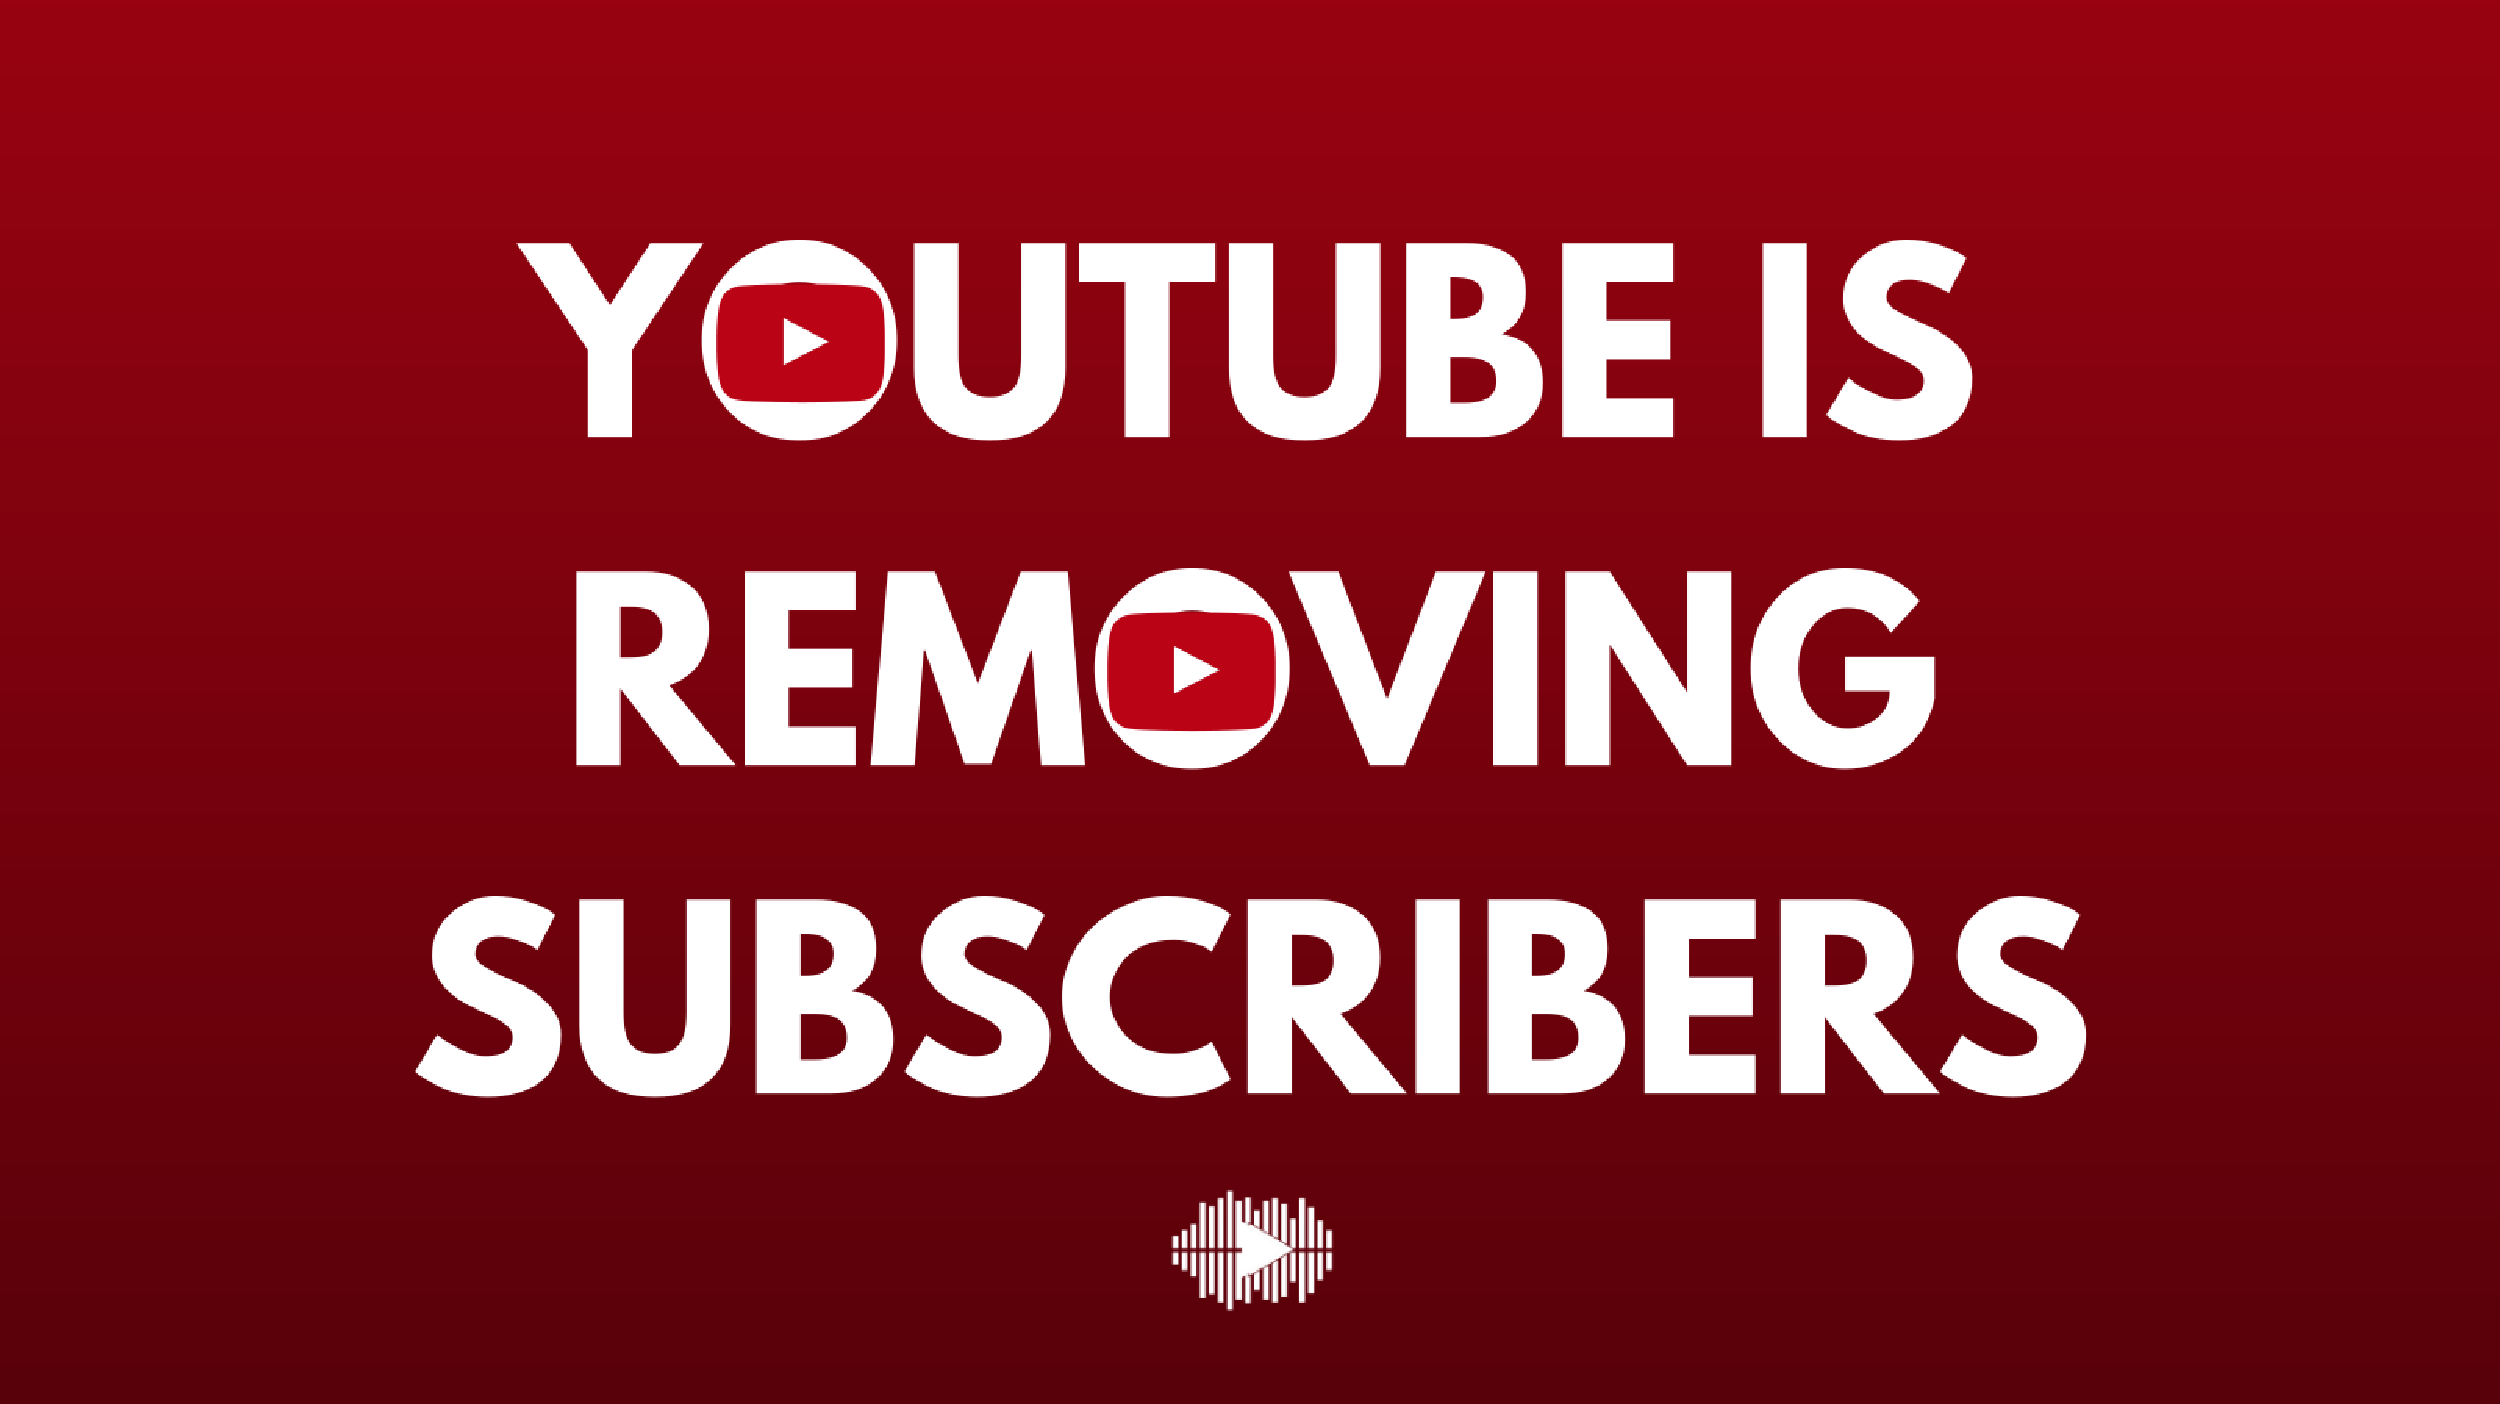 YouTube is Removing Subscribers